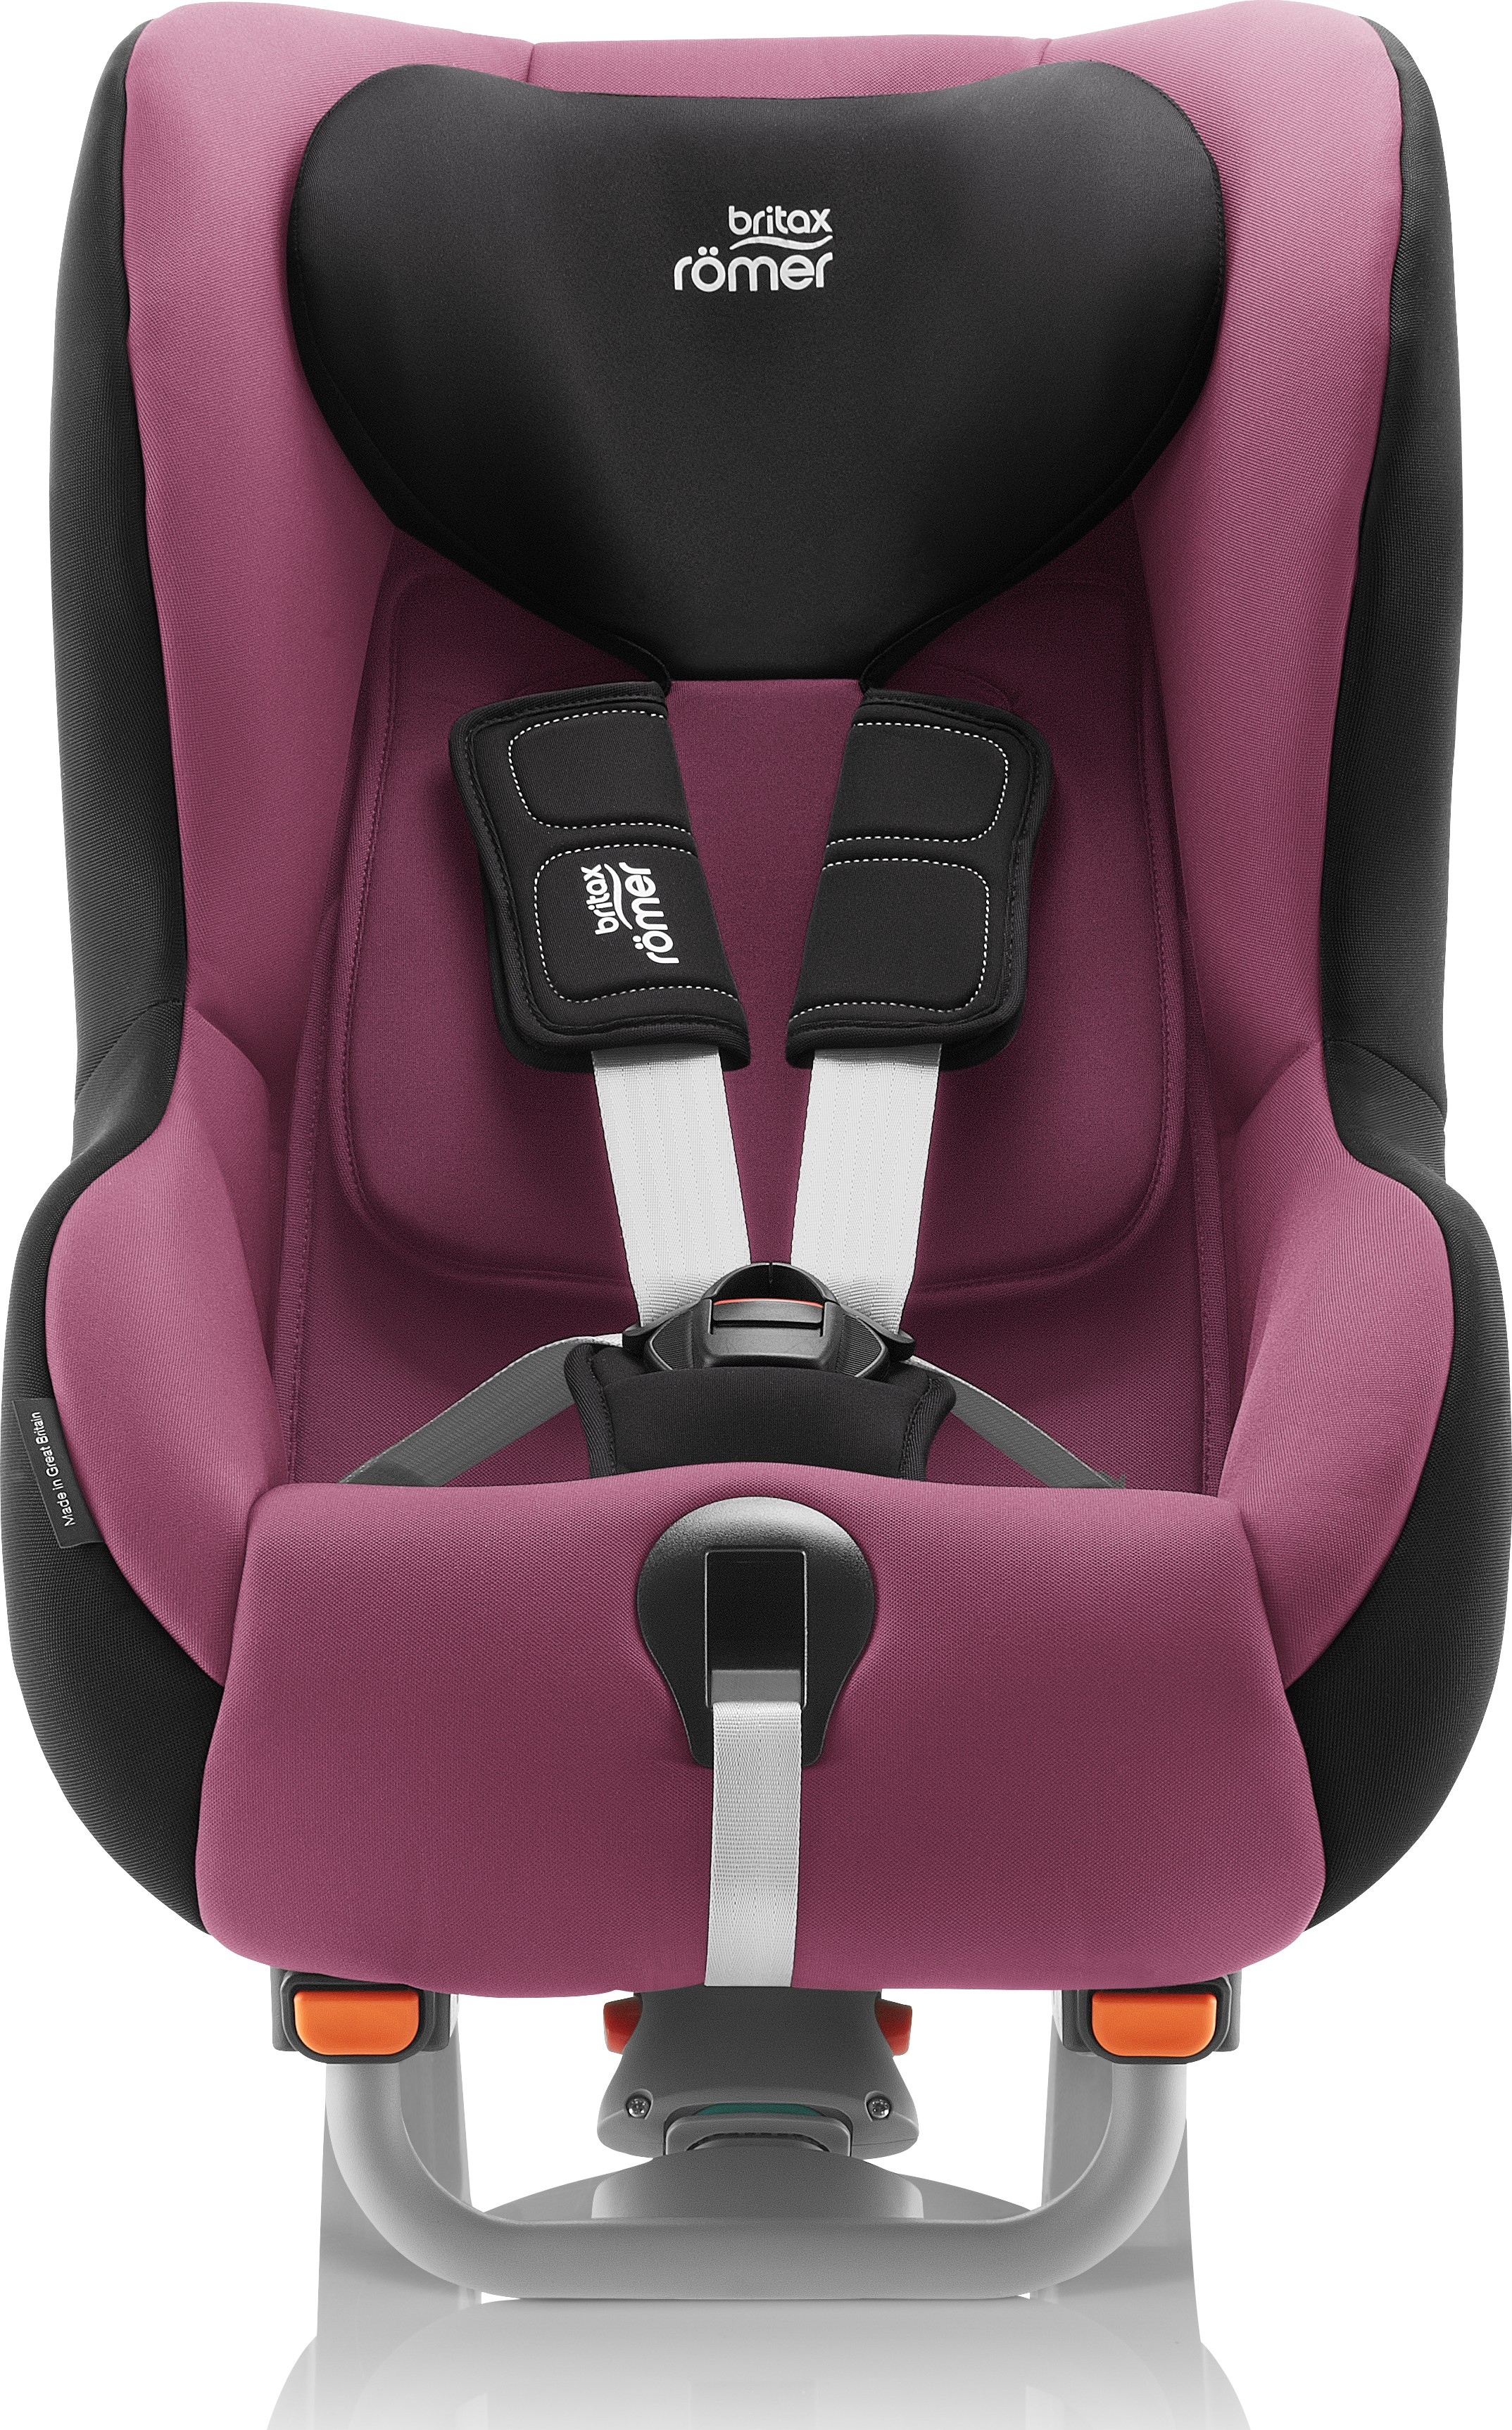 britax romer max-way plus wine rose